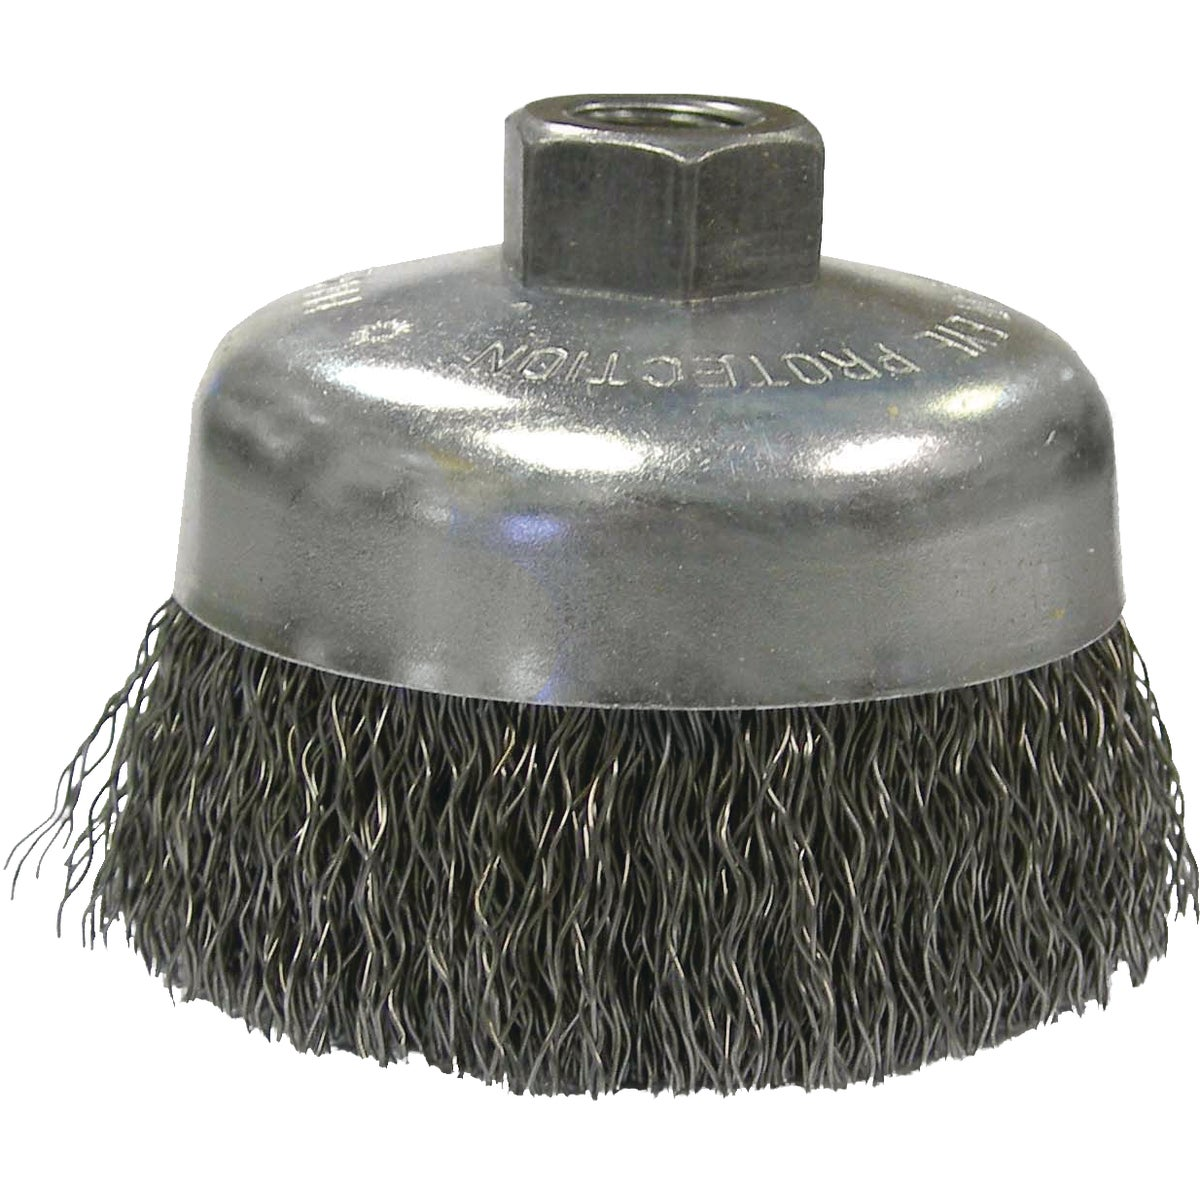 "6"" CRIMPD WIRE CUP BRUSH - 36037 by Weiler Corporation"